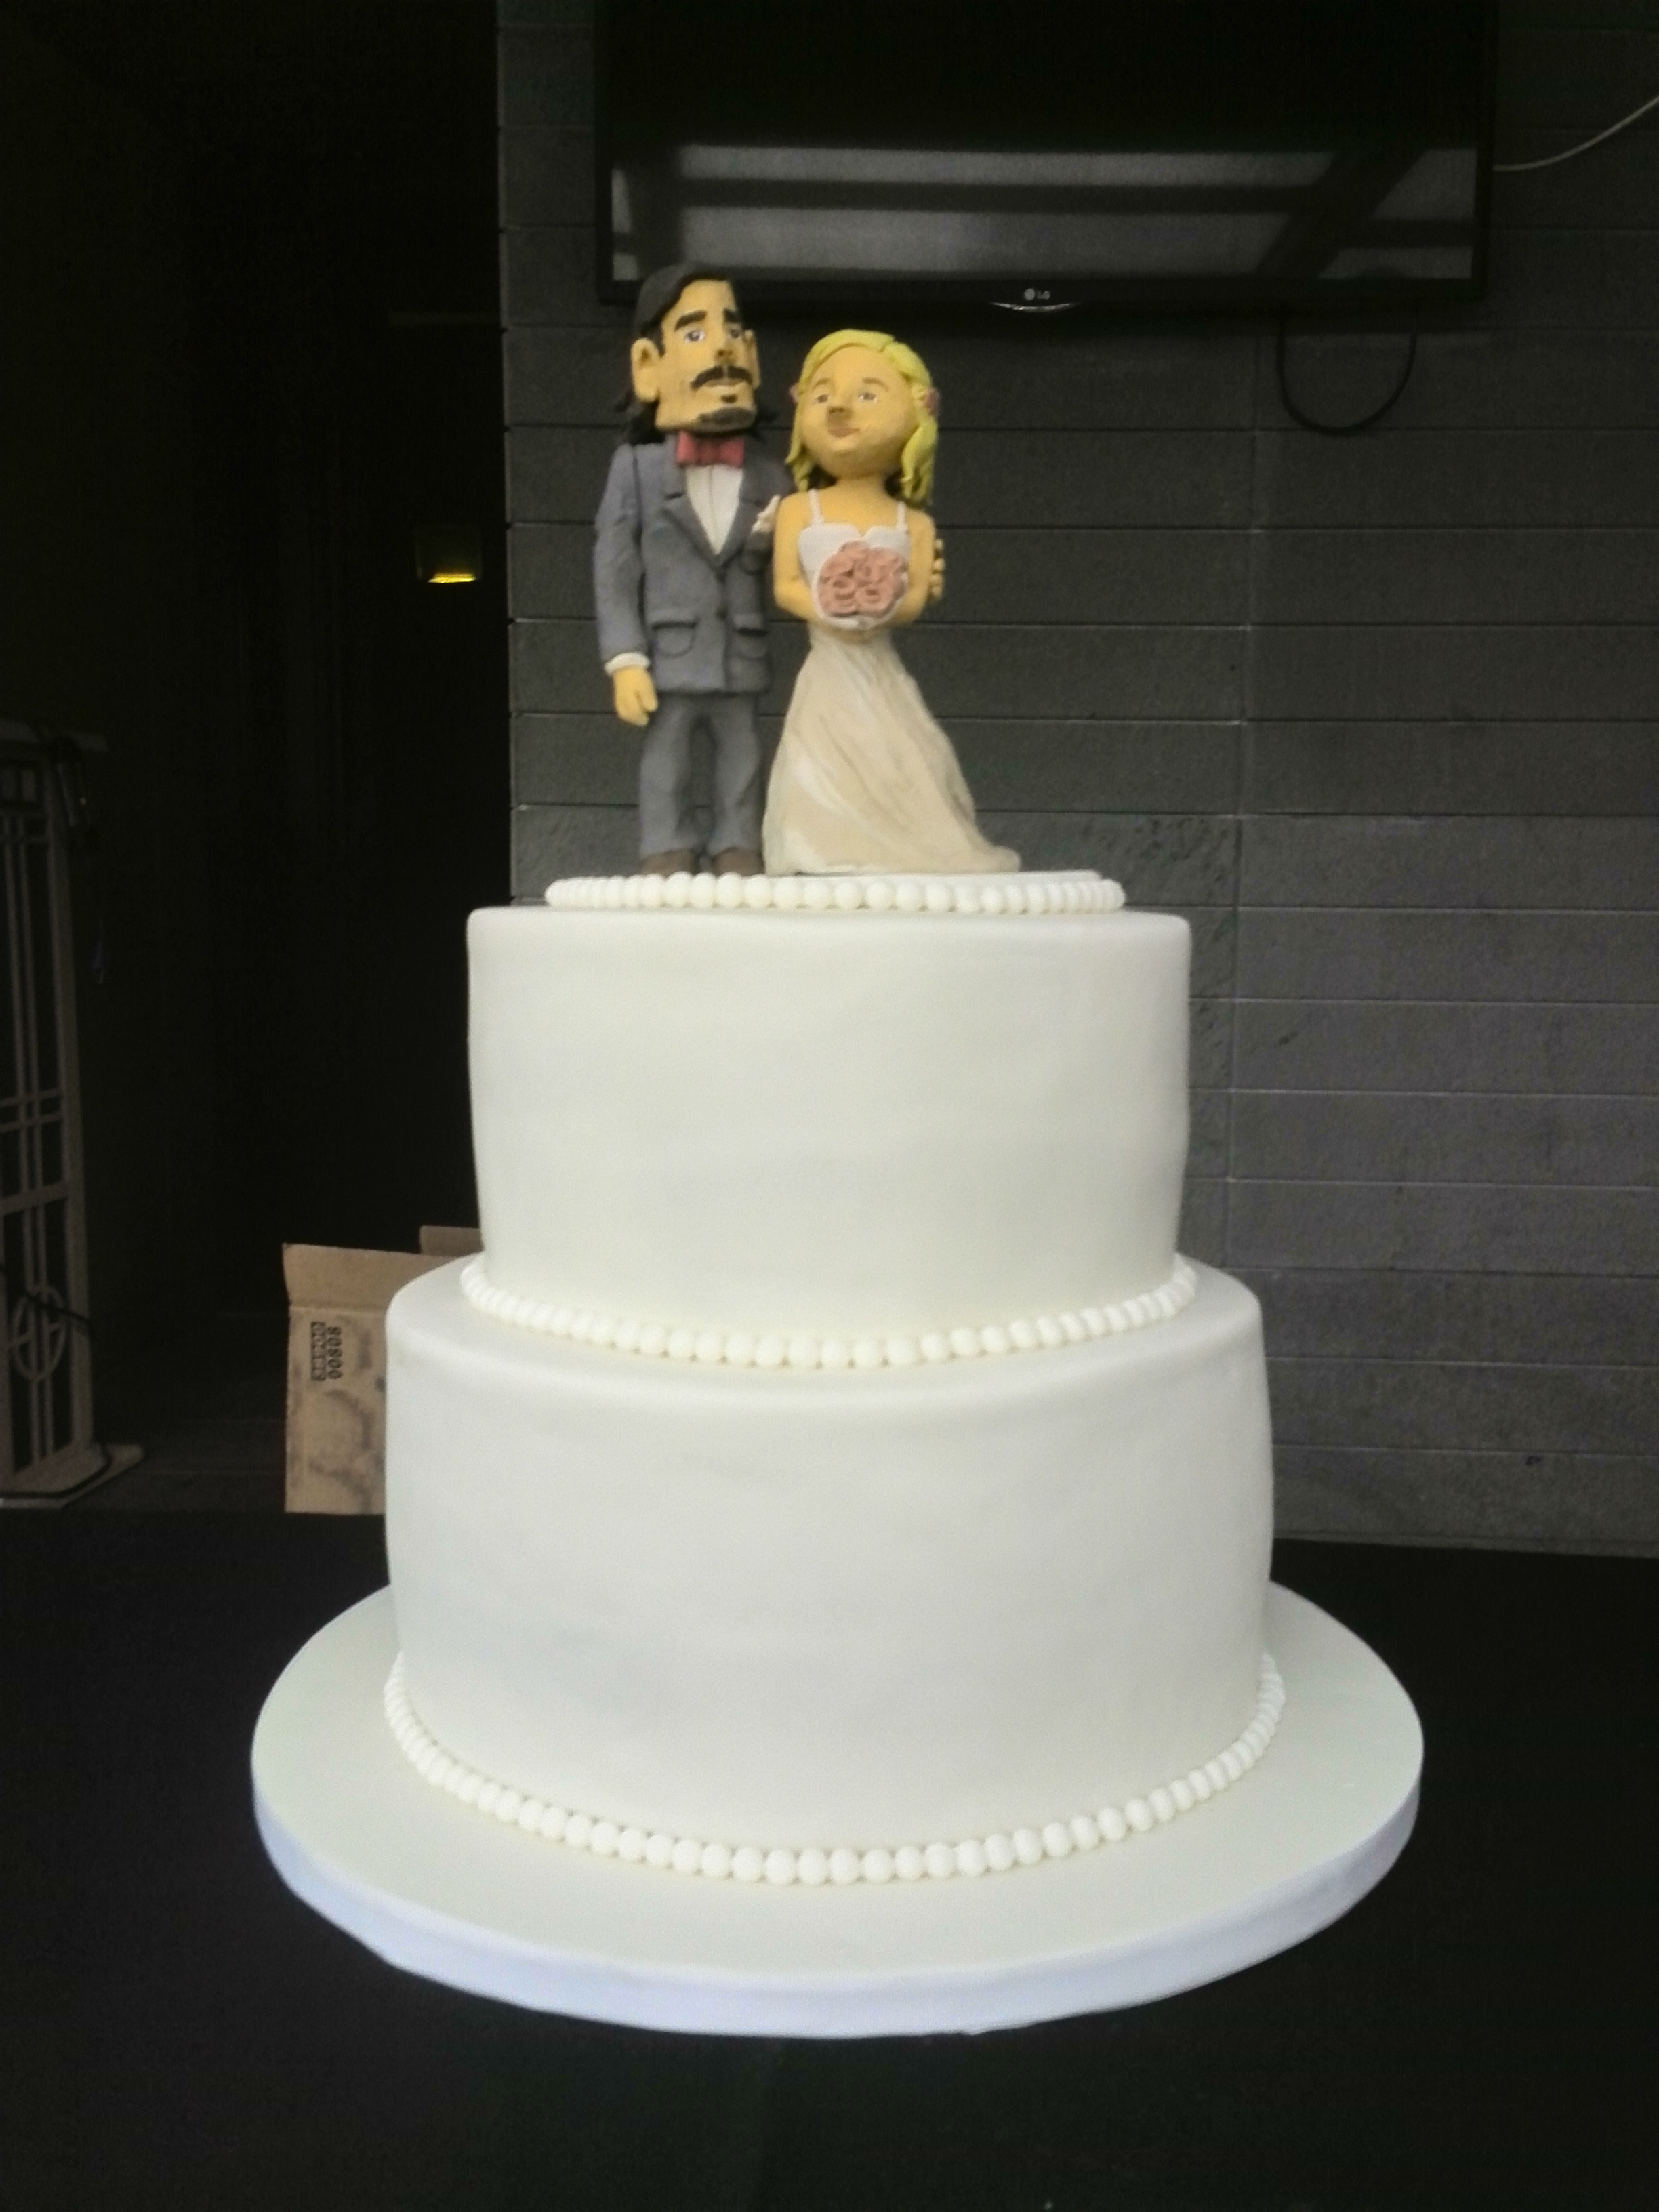 two tier wedding cake 2014 08 15 17 03 41 jpg 8142